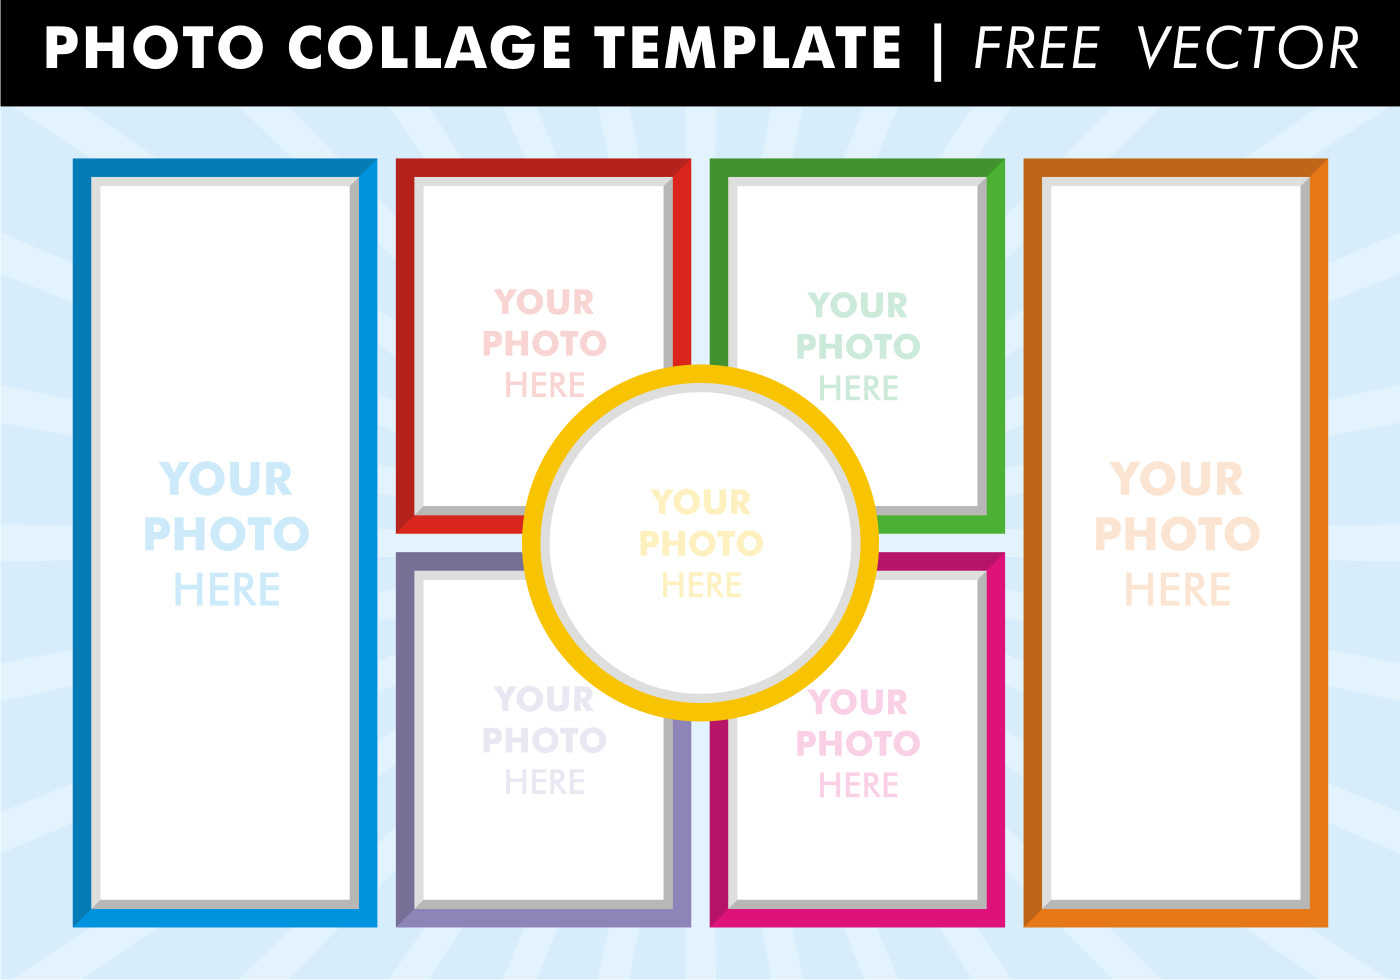 Photo Collage Template Free Collage Templates Vector Download Free Vector Art